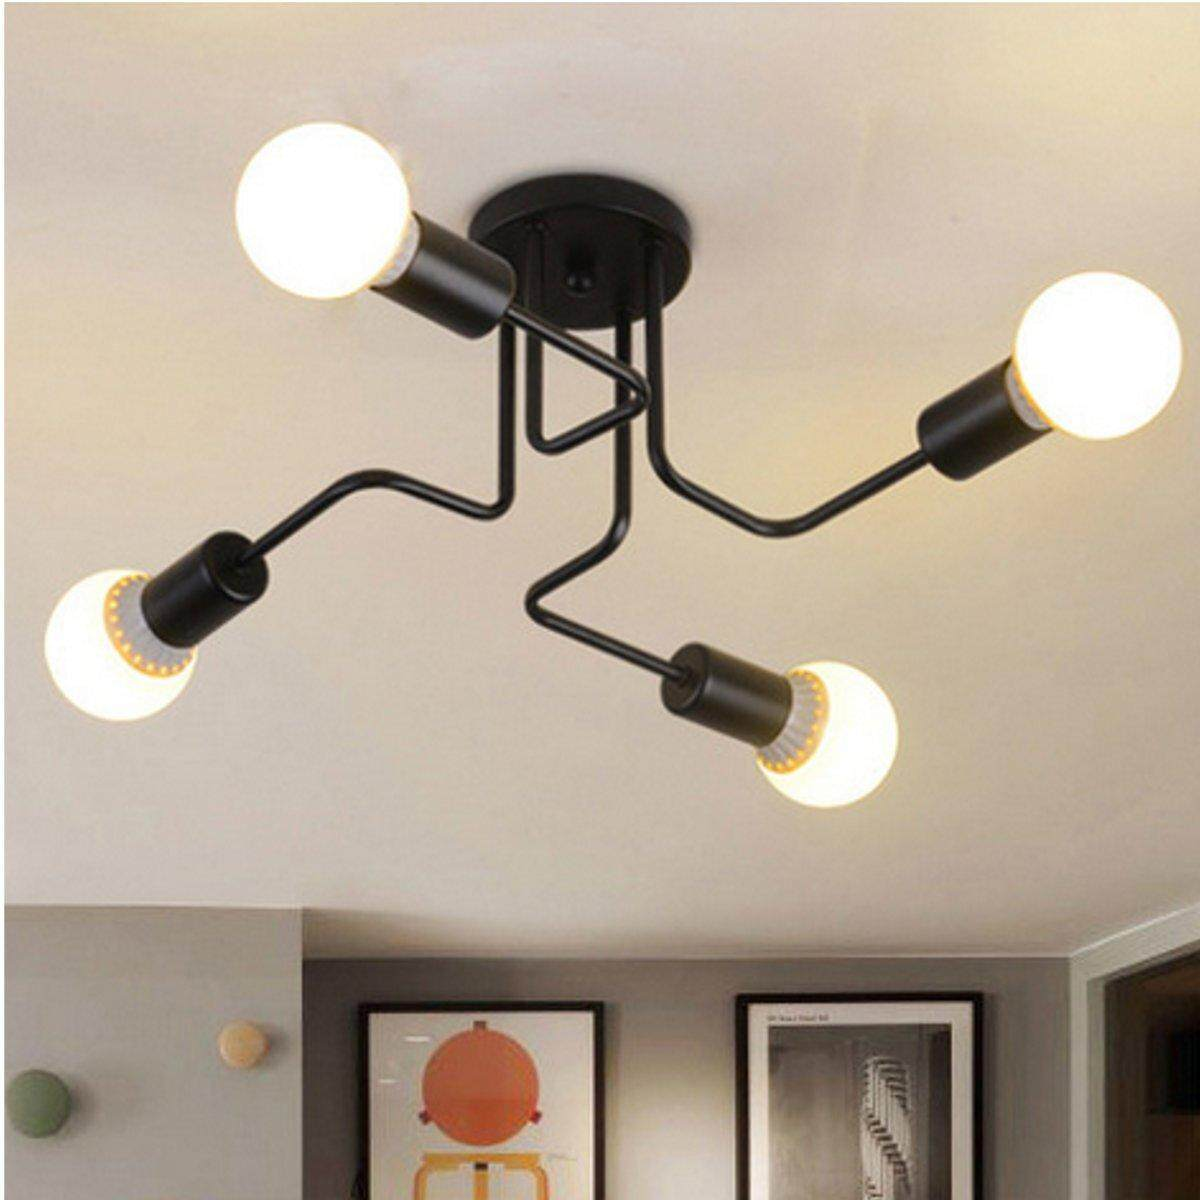 Retro ceiling light modern vintage industrial metal e27 pendant lamp 4 way black intl